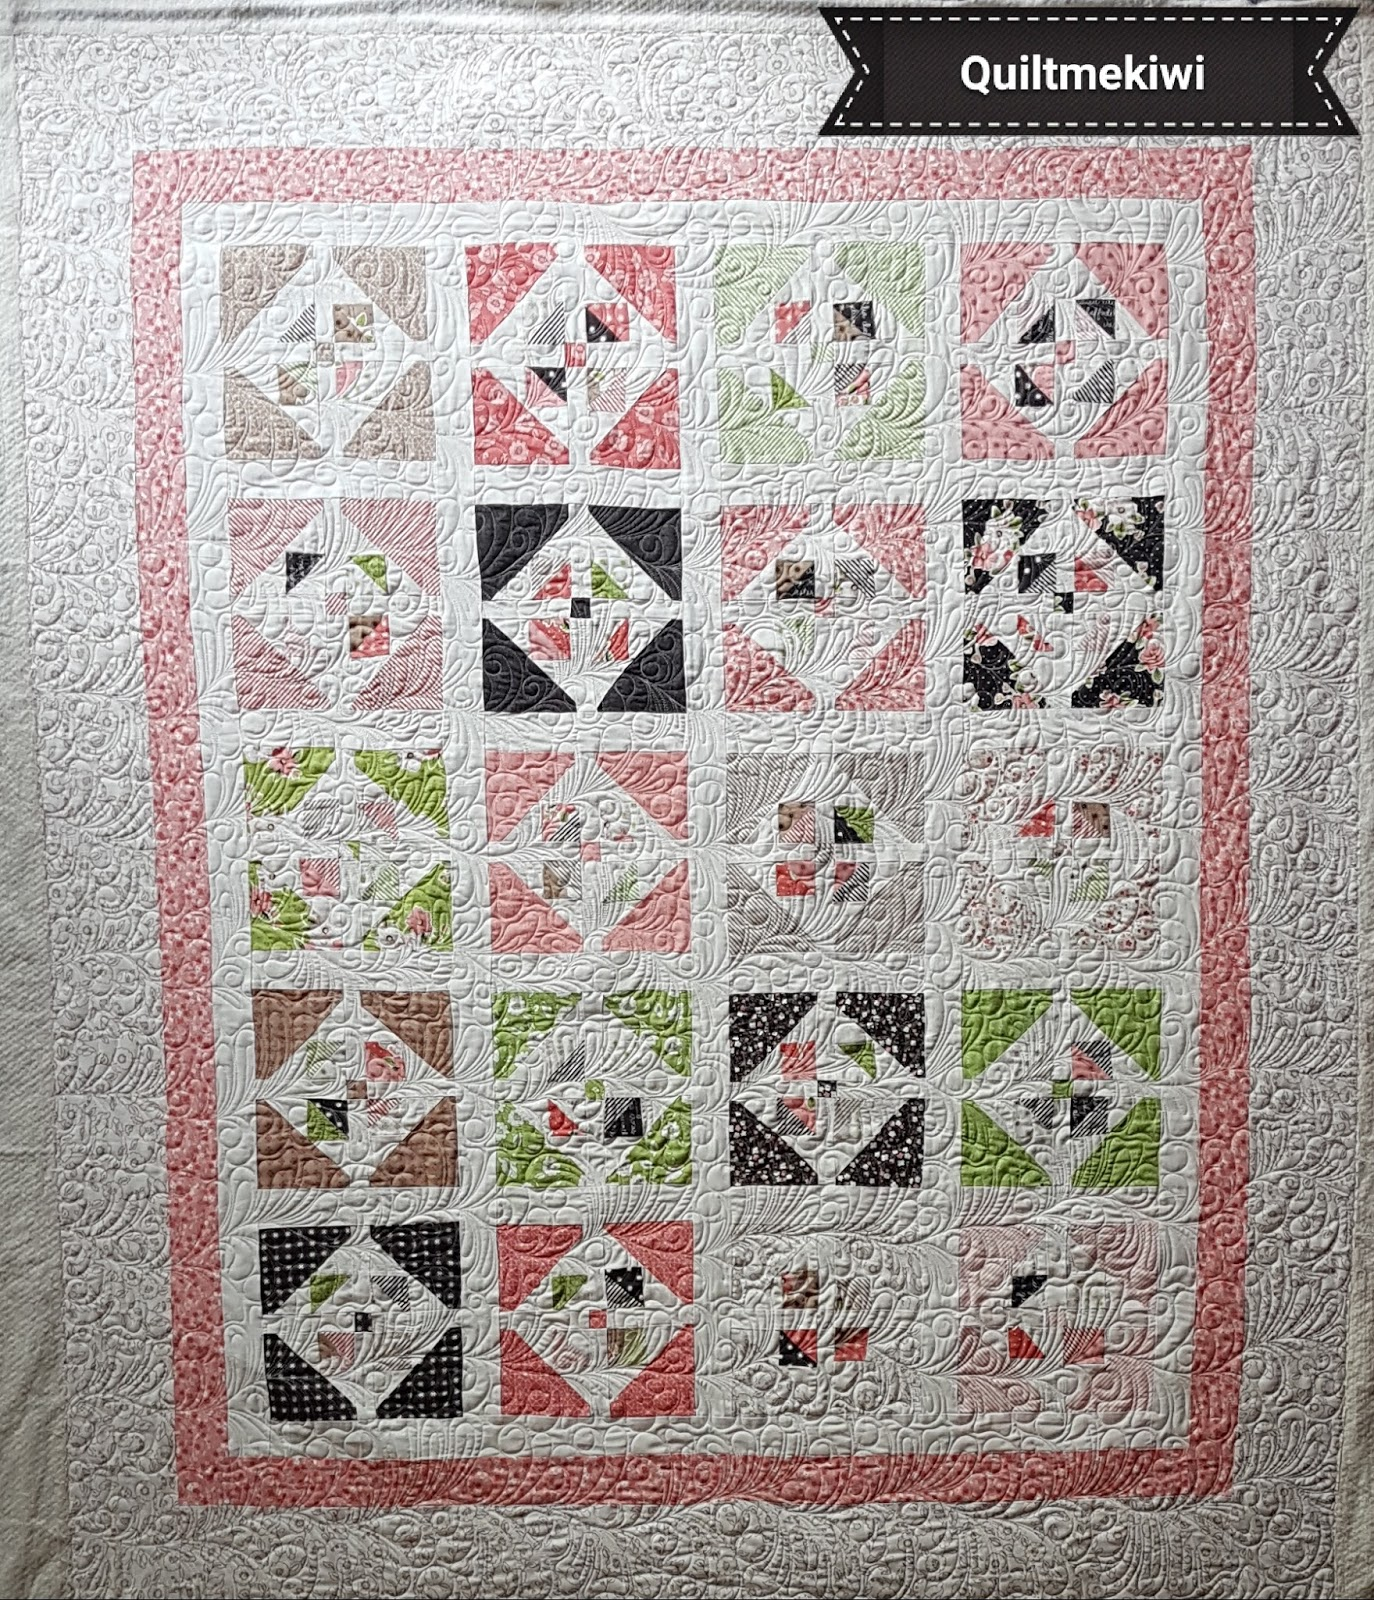 scraps tumbler two i cottage of along ready able now cottages for from they quilting gorge so re make the christmas to was quilts sale these img